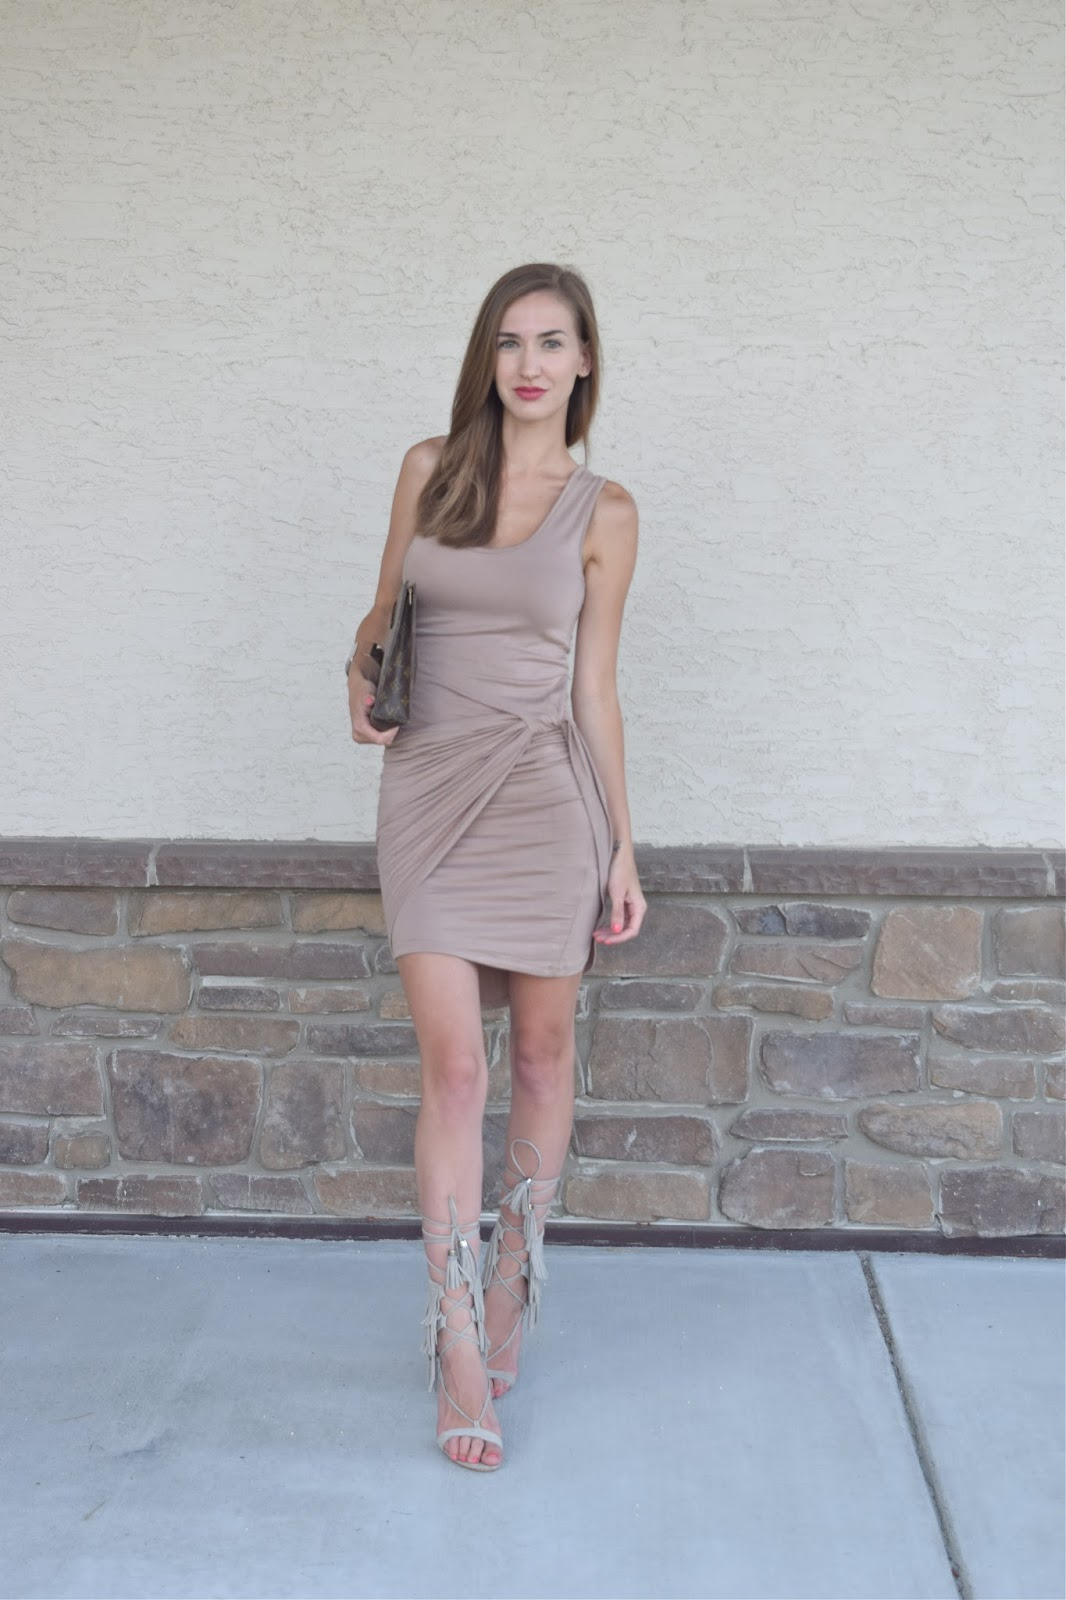 Wearing a wrap tank top dress, wearing Schutz Kija Fringe Heels in Ciment